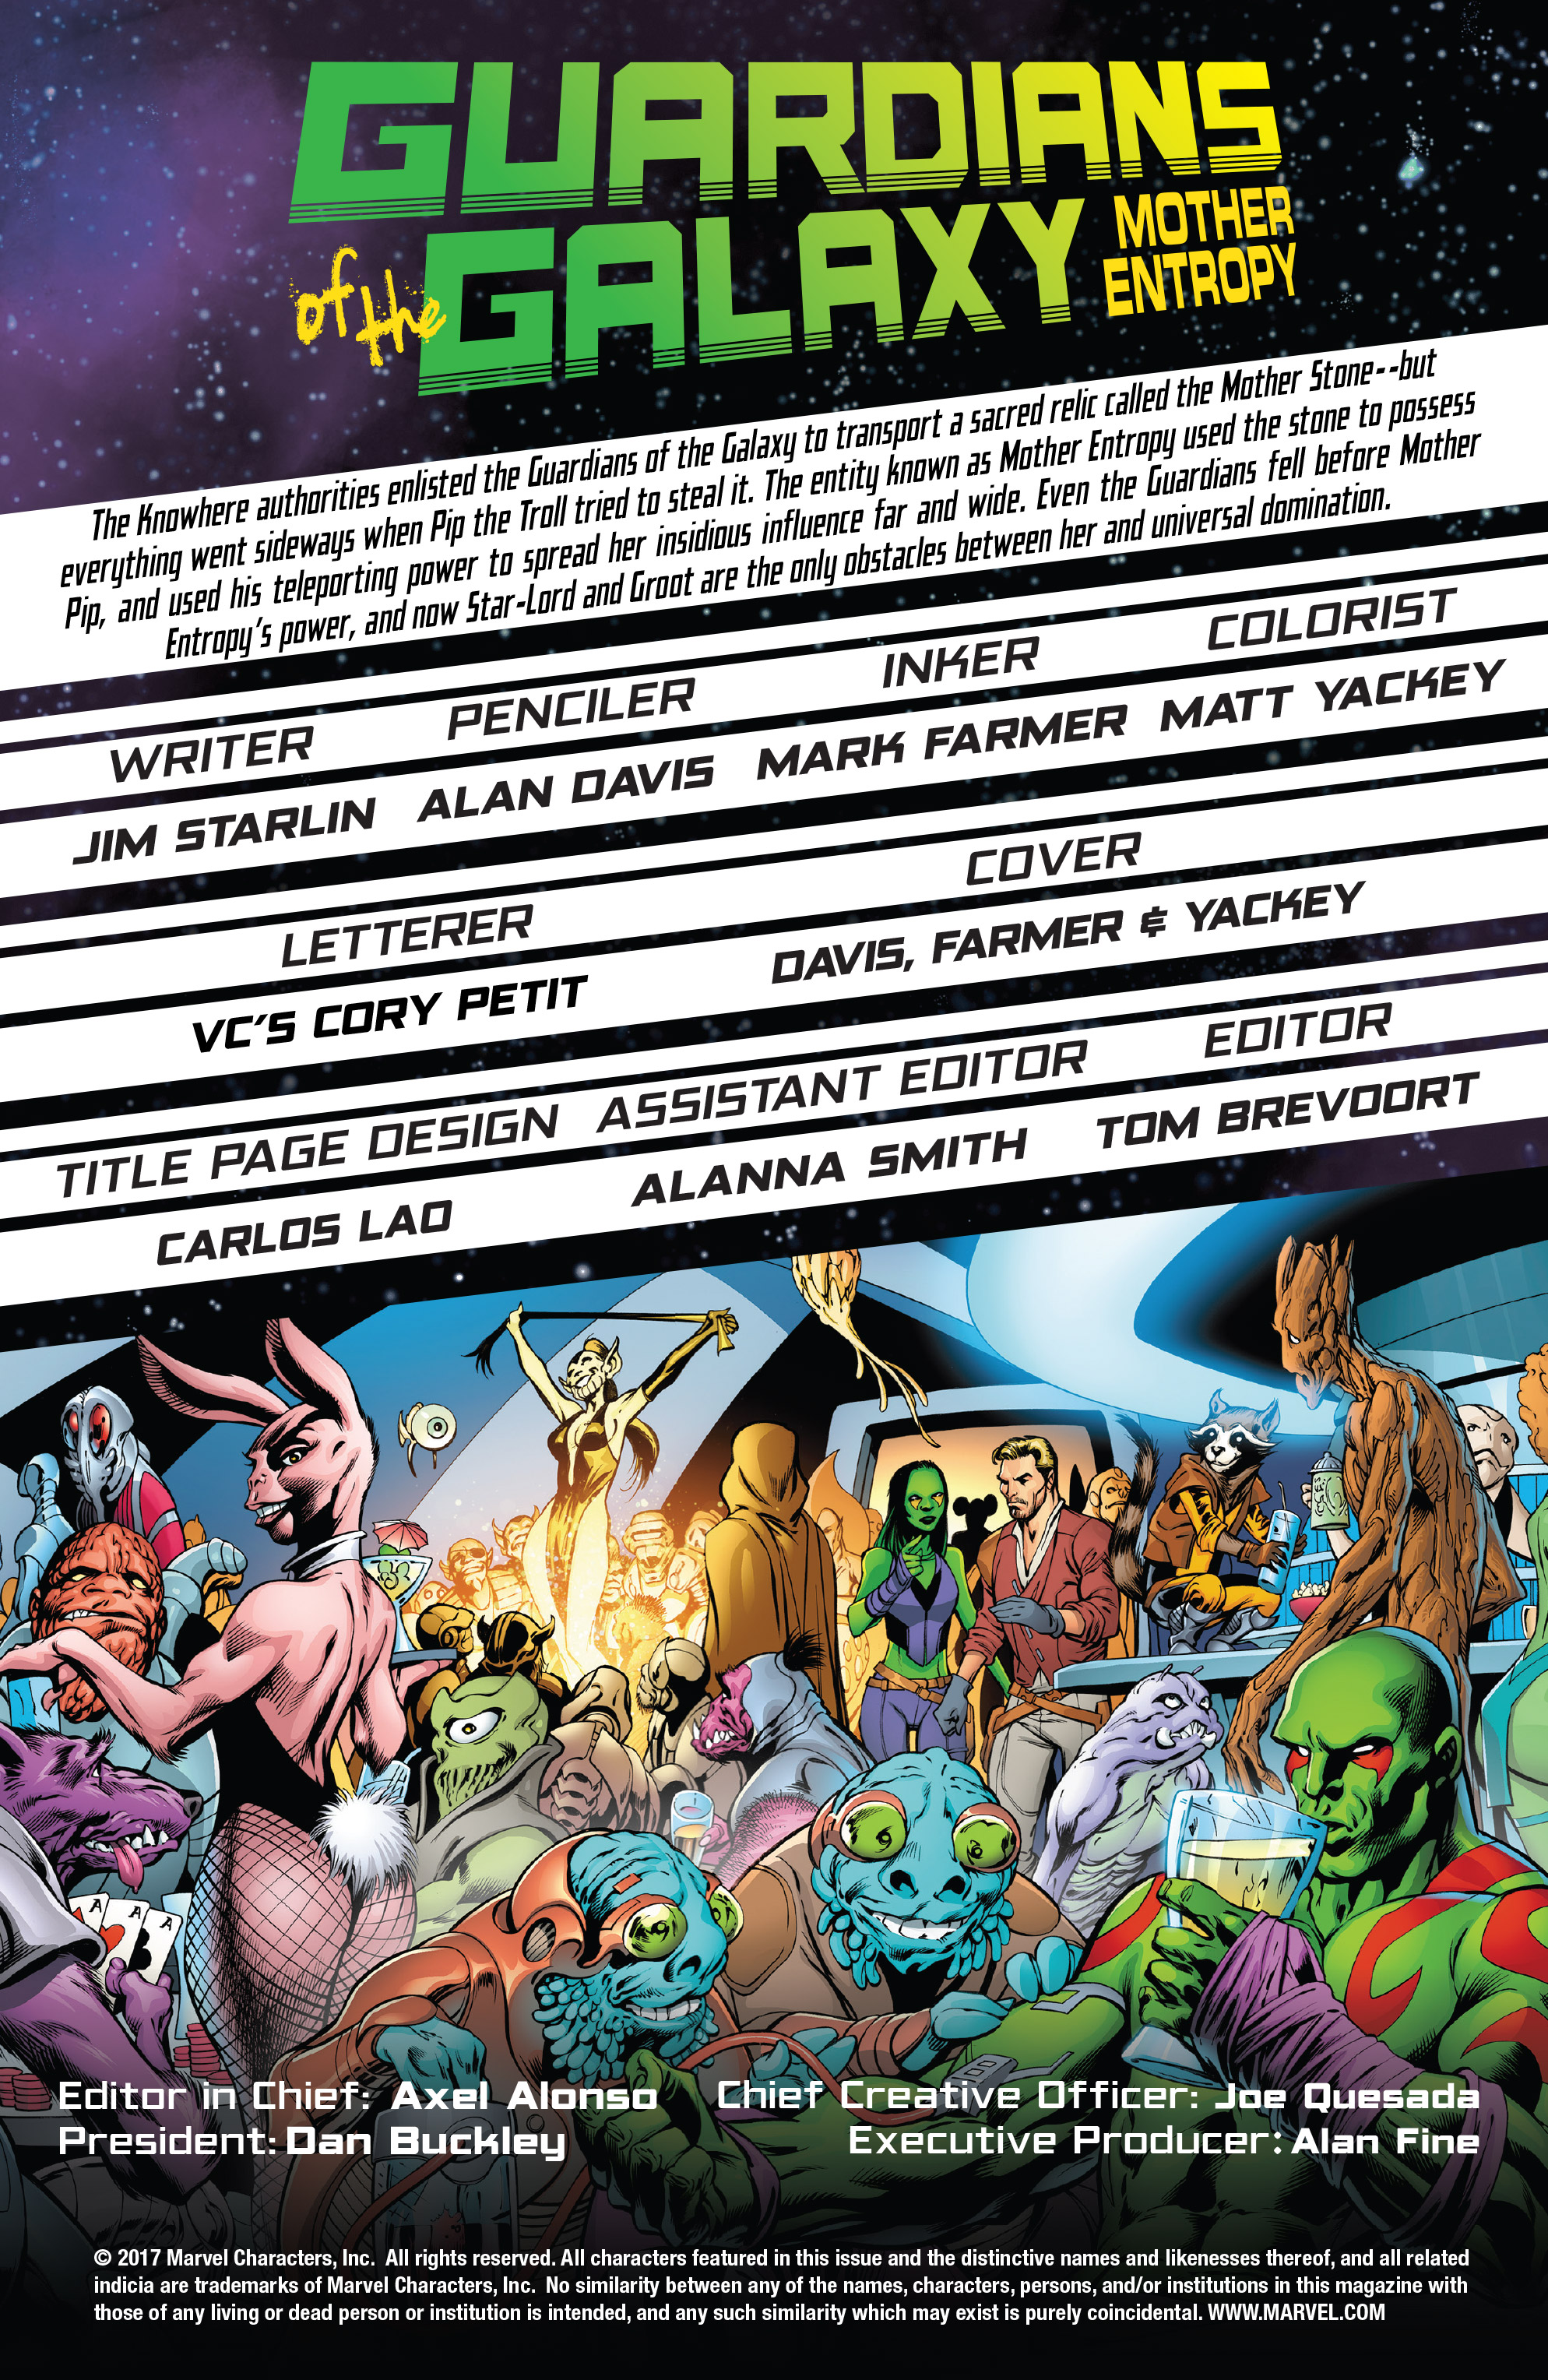 Read online Guardians of the Galaxy: Mother Entropy comic -  Issue #5 - 2